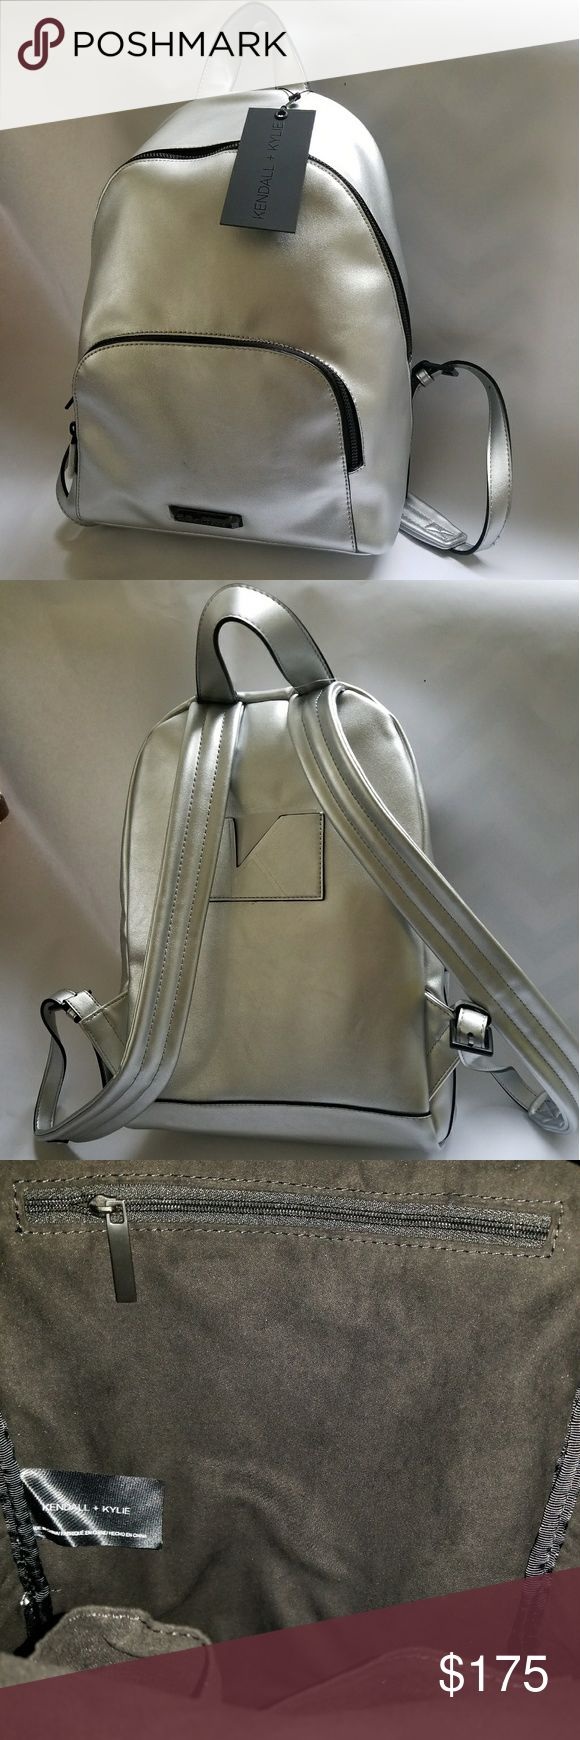 """Kendall & Kylie Silver Backpack Brand new with tags, and dust bag, Kendall+Kylie Smooth Silver Backpack.  -Signature card slot at the back.  - 2 Tiered front zip pockets. -Leather-like silver outer (polyester)  -Suede-like black interior (polyester) with a wall zip pocket, and2 slip pockets.  -Black hardware which Logo plaque at bottom center.  -Top loop with a 3.5"""" drop, and adjustable shoulder straps. Tags: Kendall and Kylie, Kardashian, Jenner, Backpack Kendall & Kylie Bags Backpacks"""